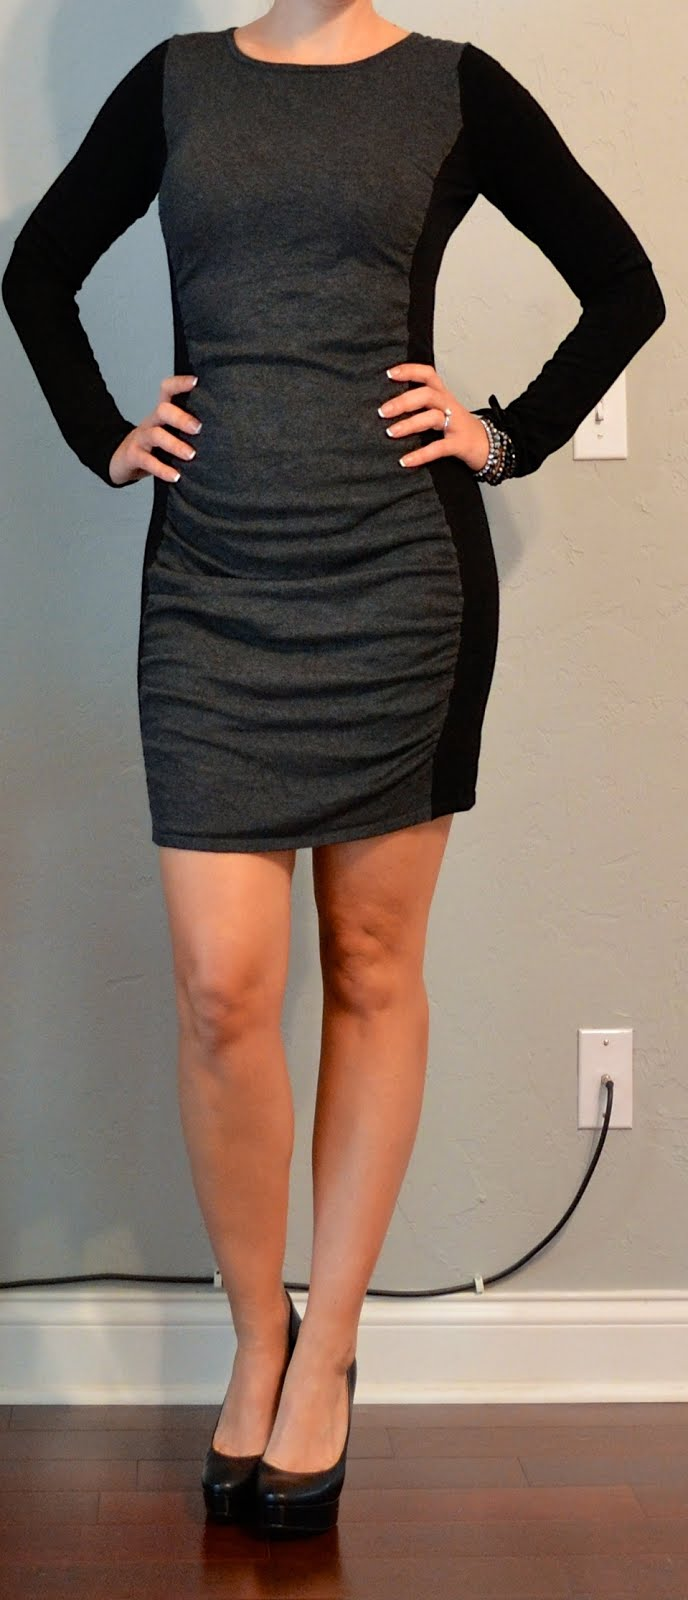 Outfit Post Grey Black Color Blocked Sweater Dress Black Pumps